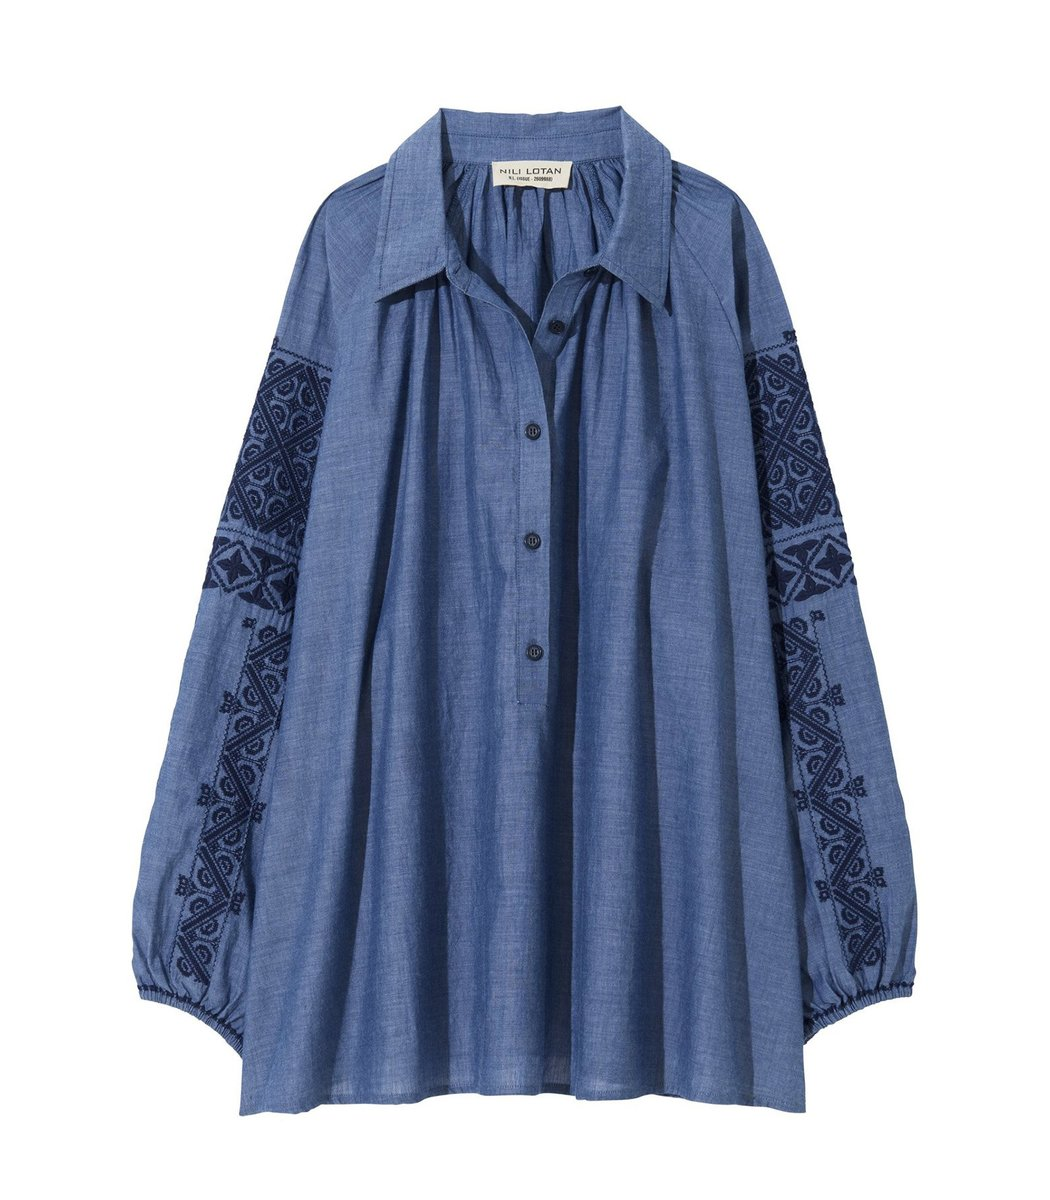 Nili Lotan Abby Romanian Embroidered Top in Chambray/Navy